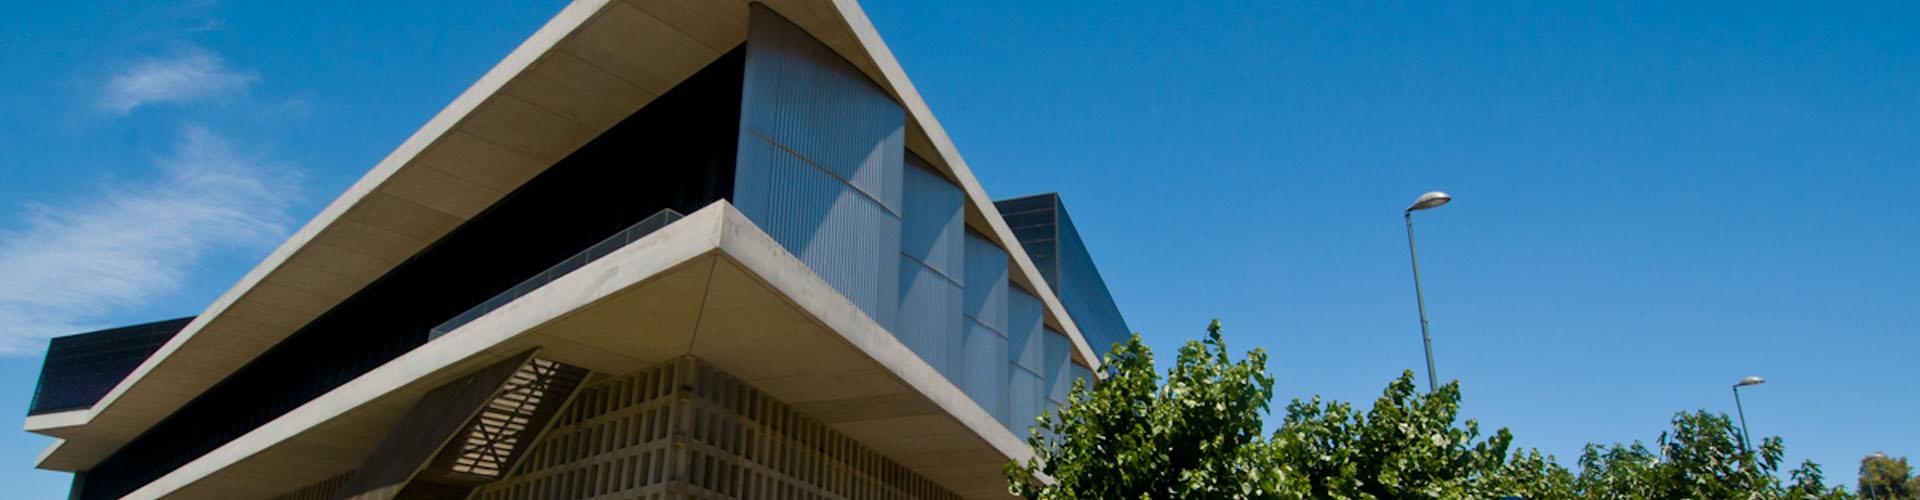 New Acropolis Museum - STARLITE top